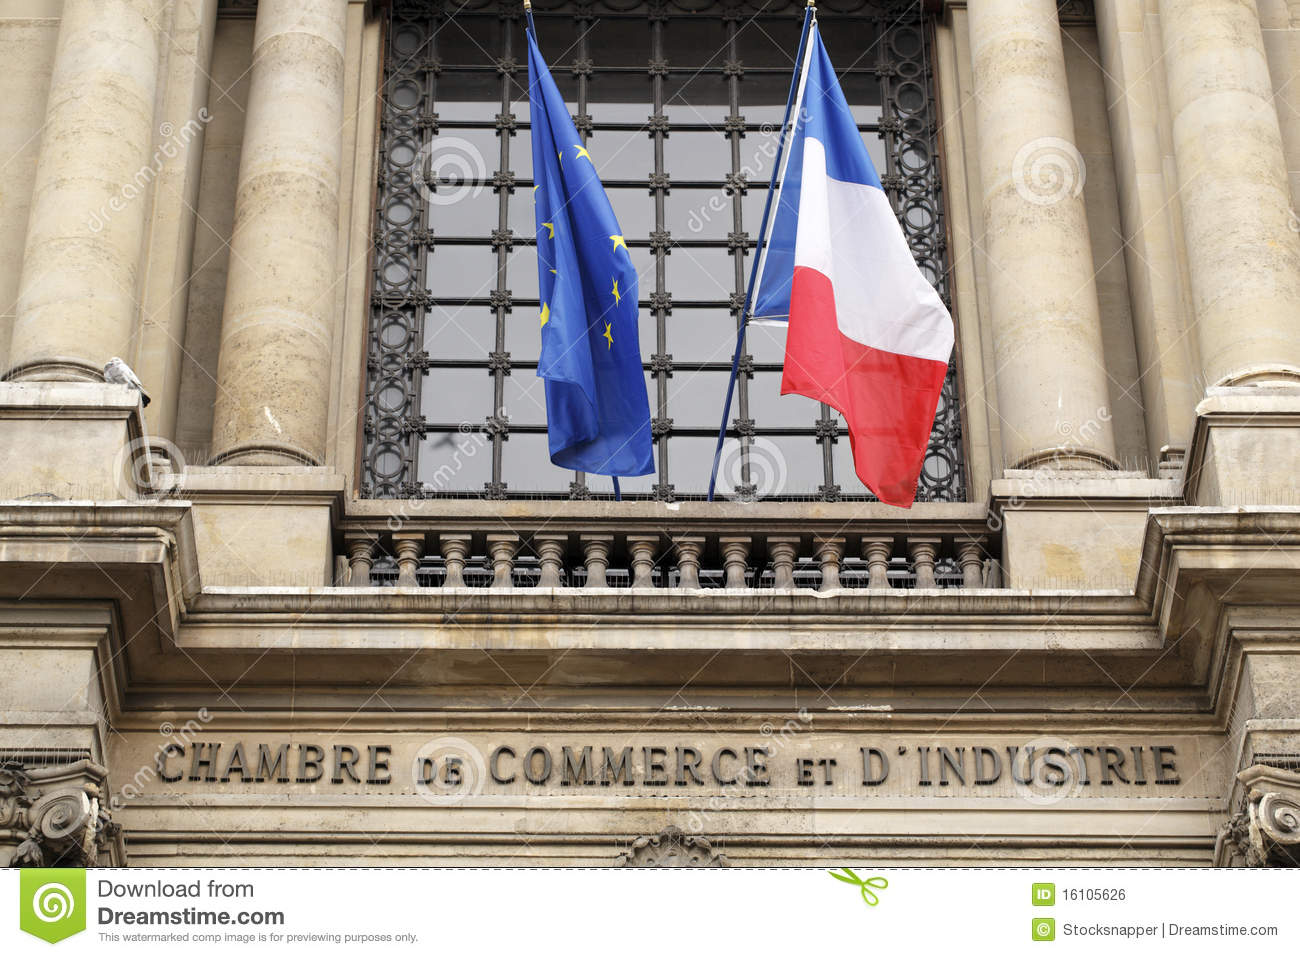 The paris chamber of commerce stock photo image 16105626 for Chambre de commerce internationale paris arbitrage